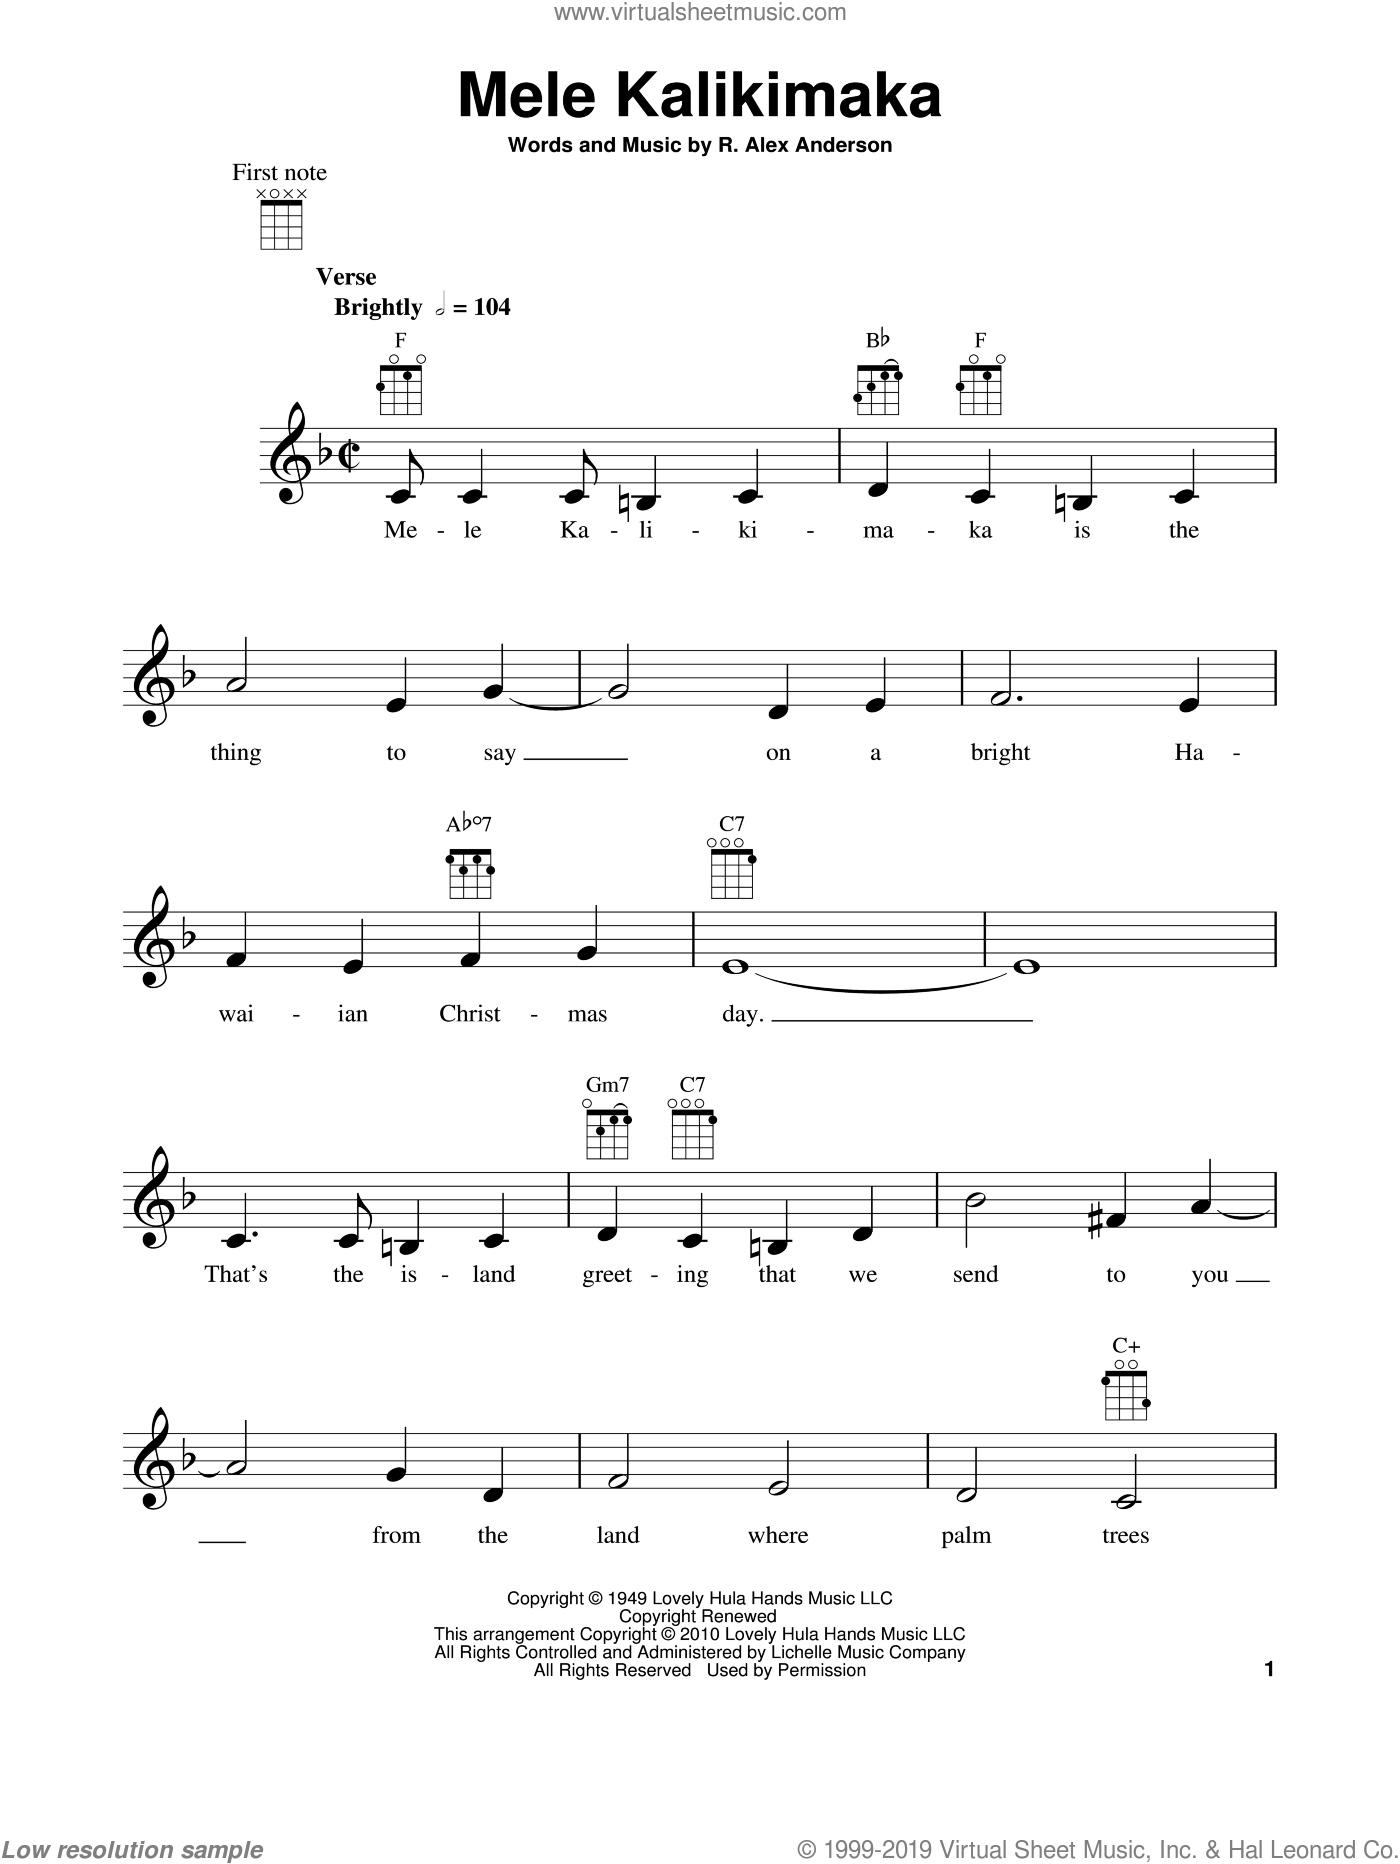 Mele Kalikimaka (Merry Christmas In Hawaii) sheet music for ukulele by Bing Crosby and R. Alex Anderson, intermediate skill level